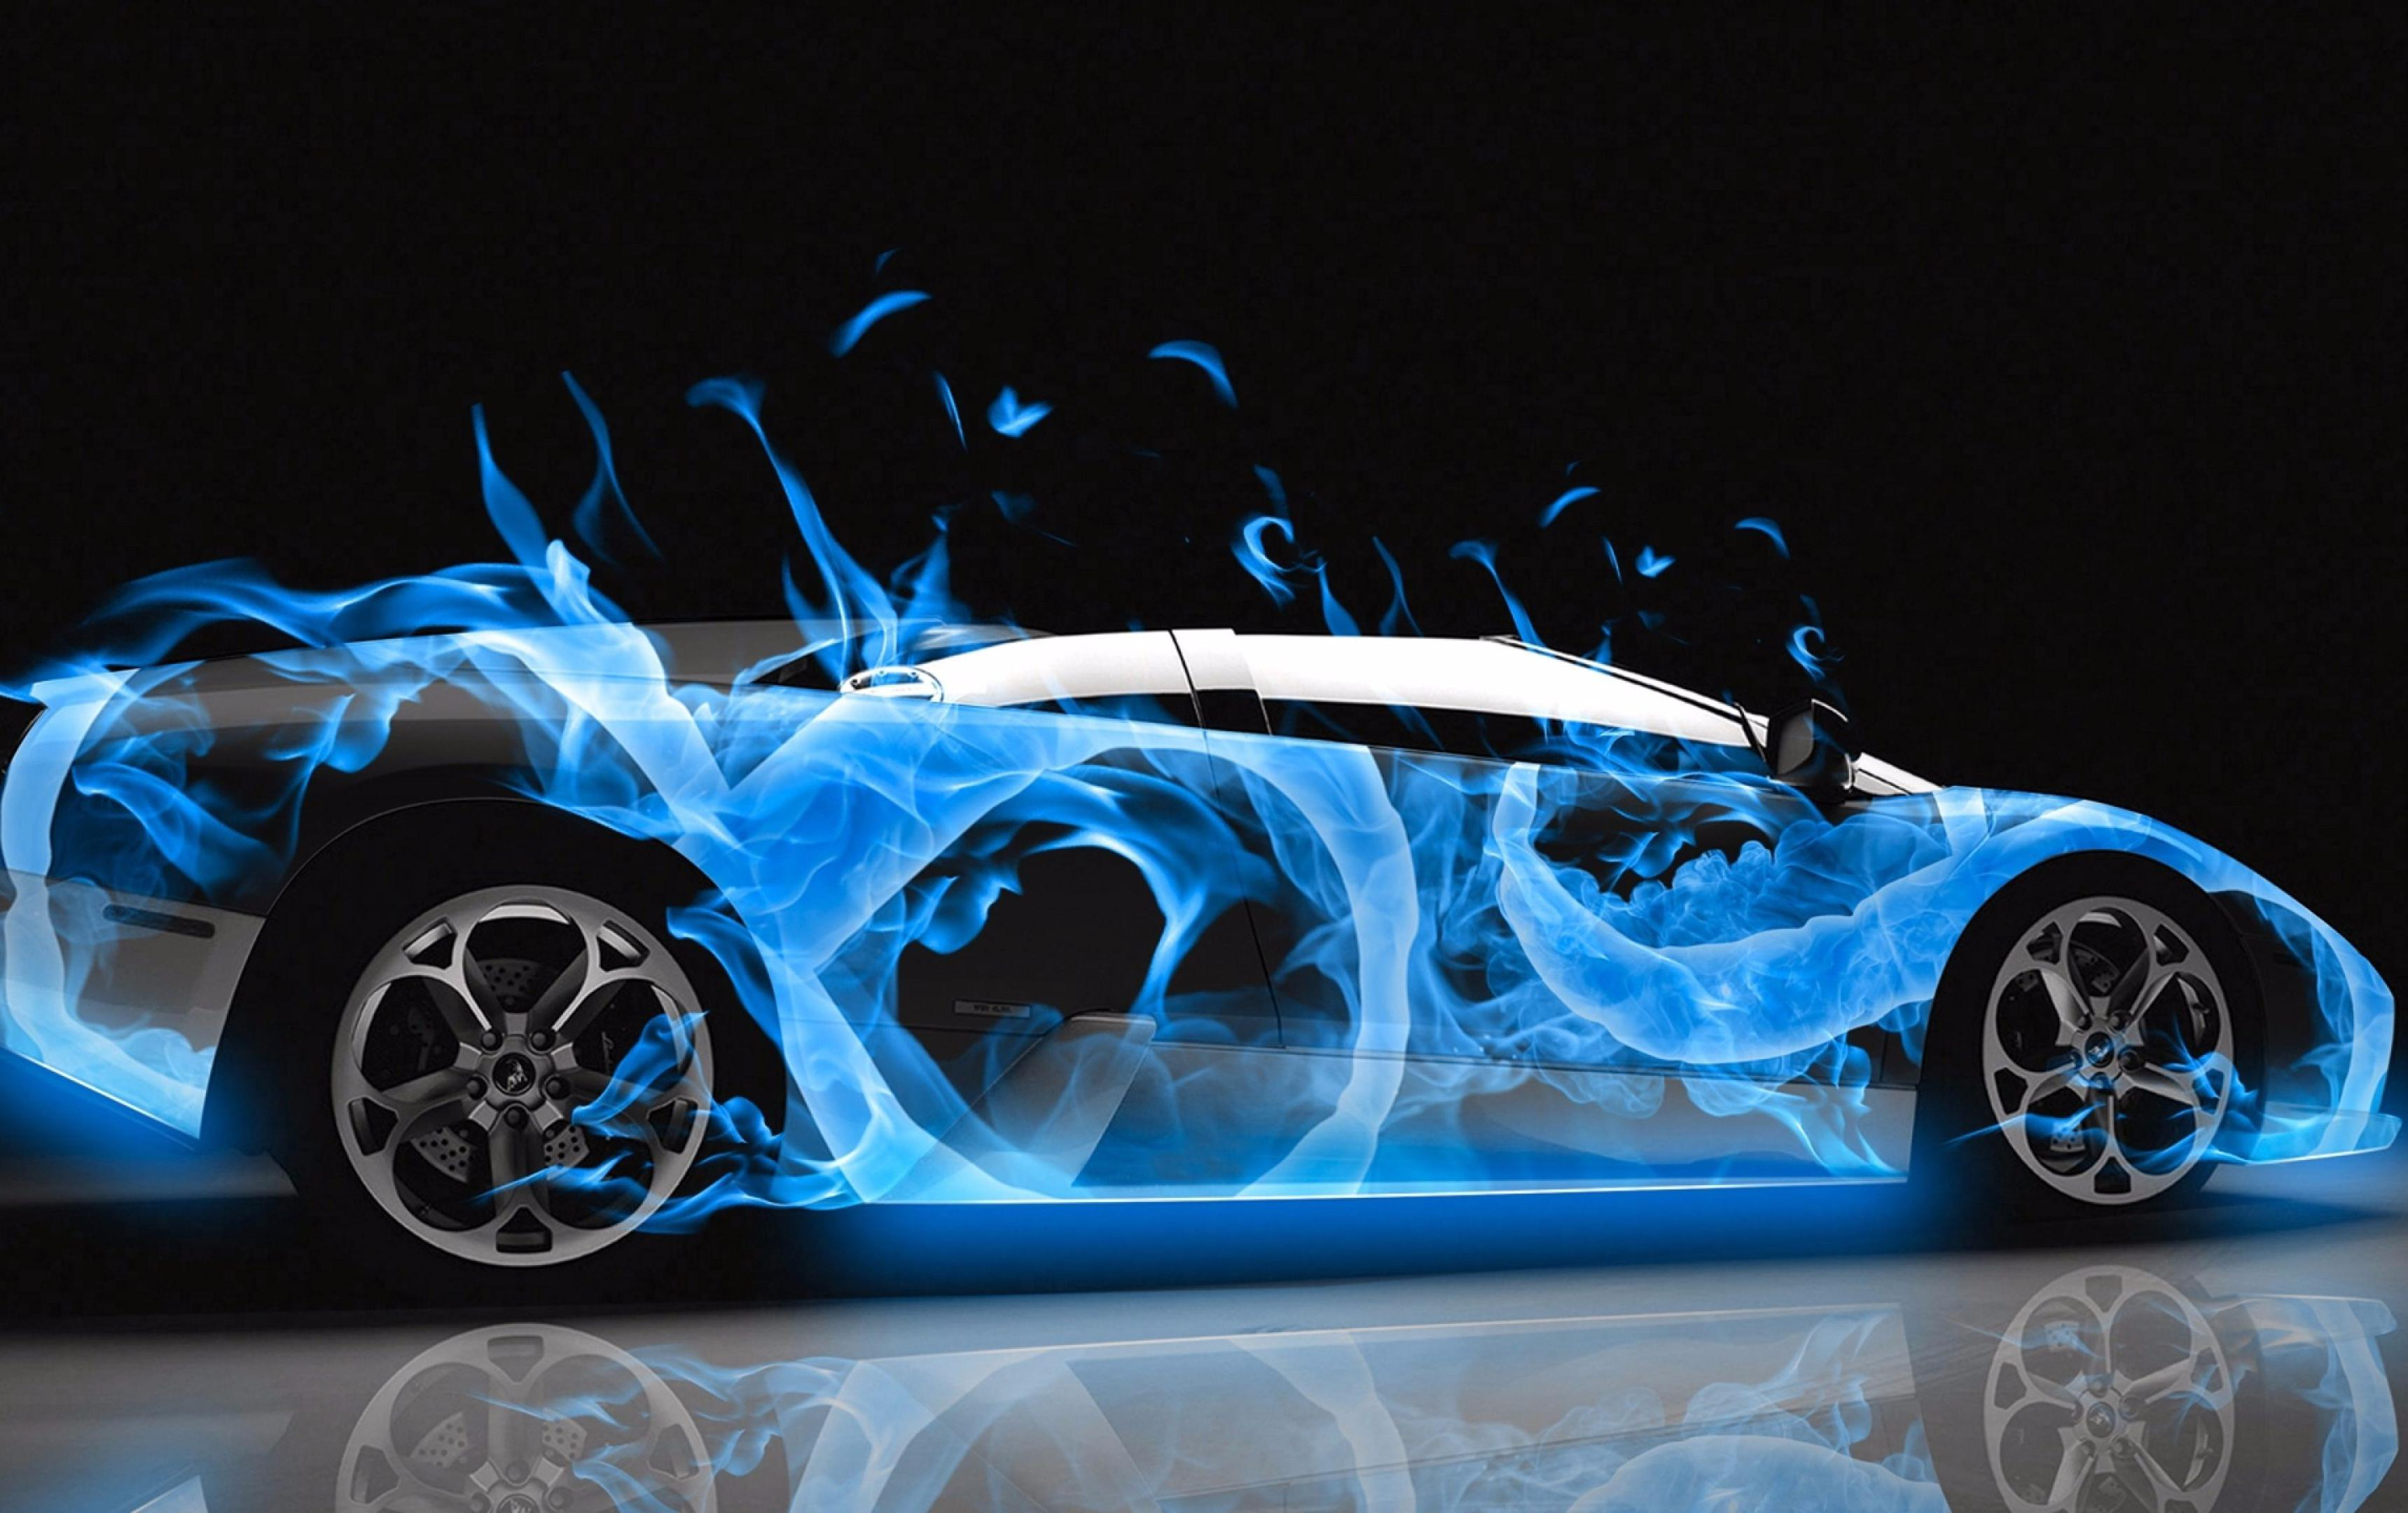 3d Neon Car Wallpapers Hd For Android Apk Download